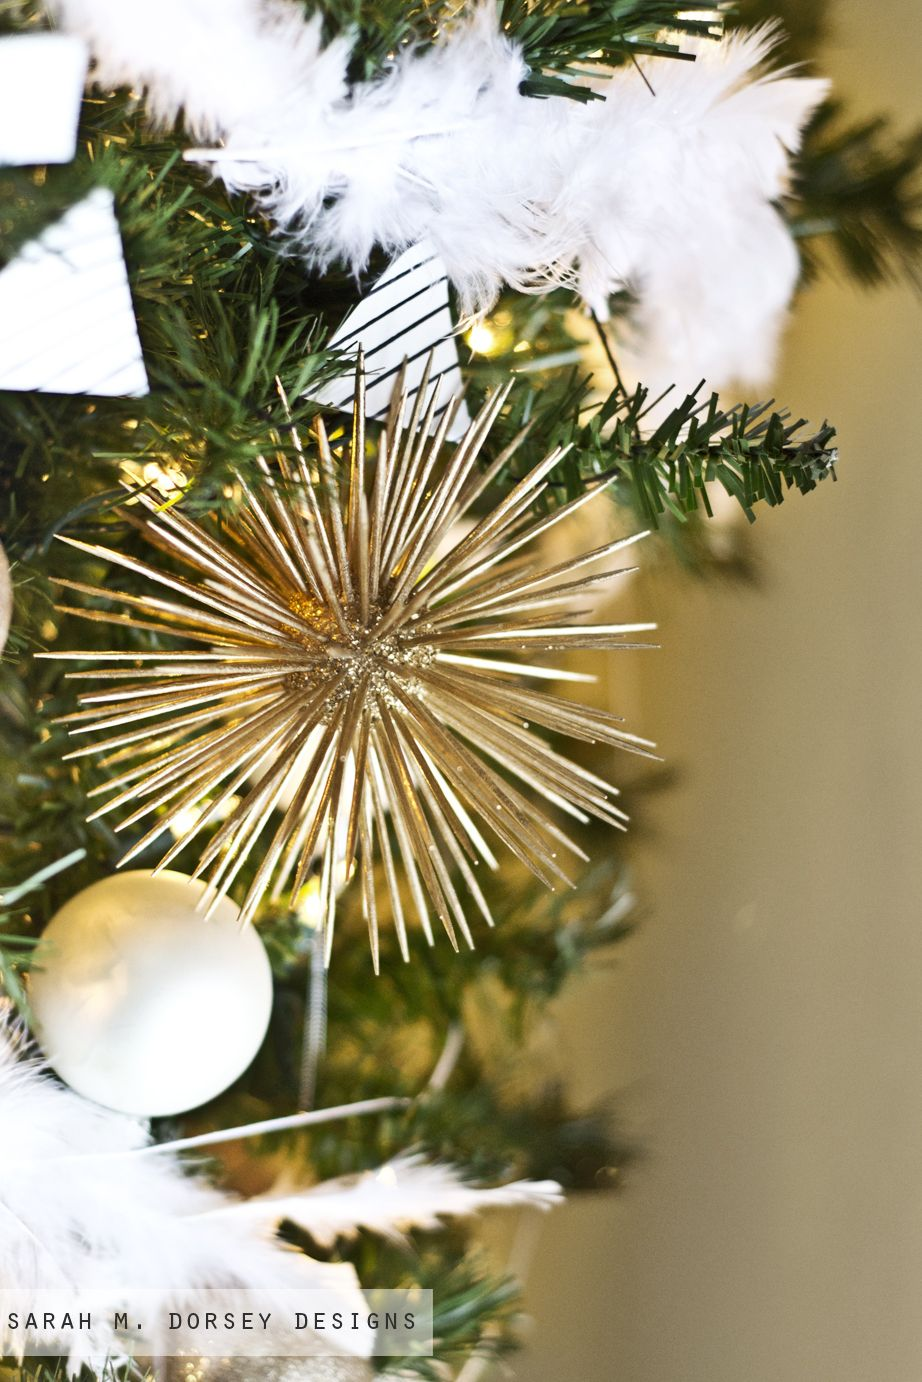 Urchin Ornaments Made With Styrofoam Balls Toothpicks And Gold Spray Paint Christmas Crafts Decorations Diy Christmas Ornaments Christmas Diy